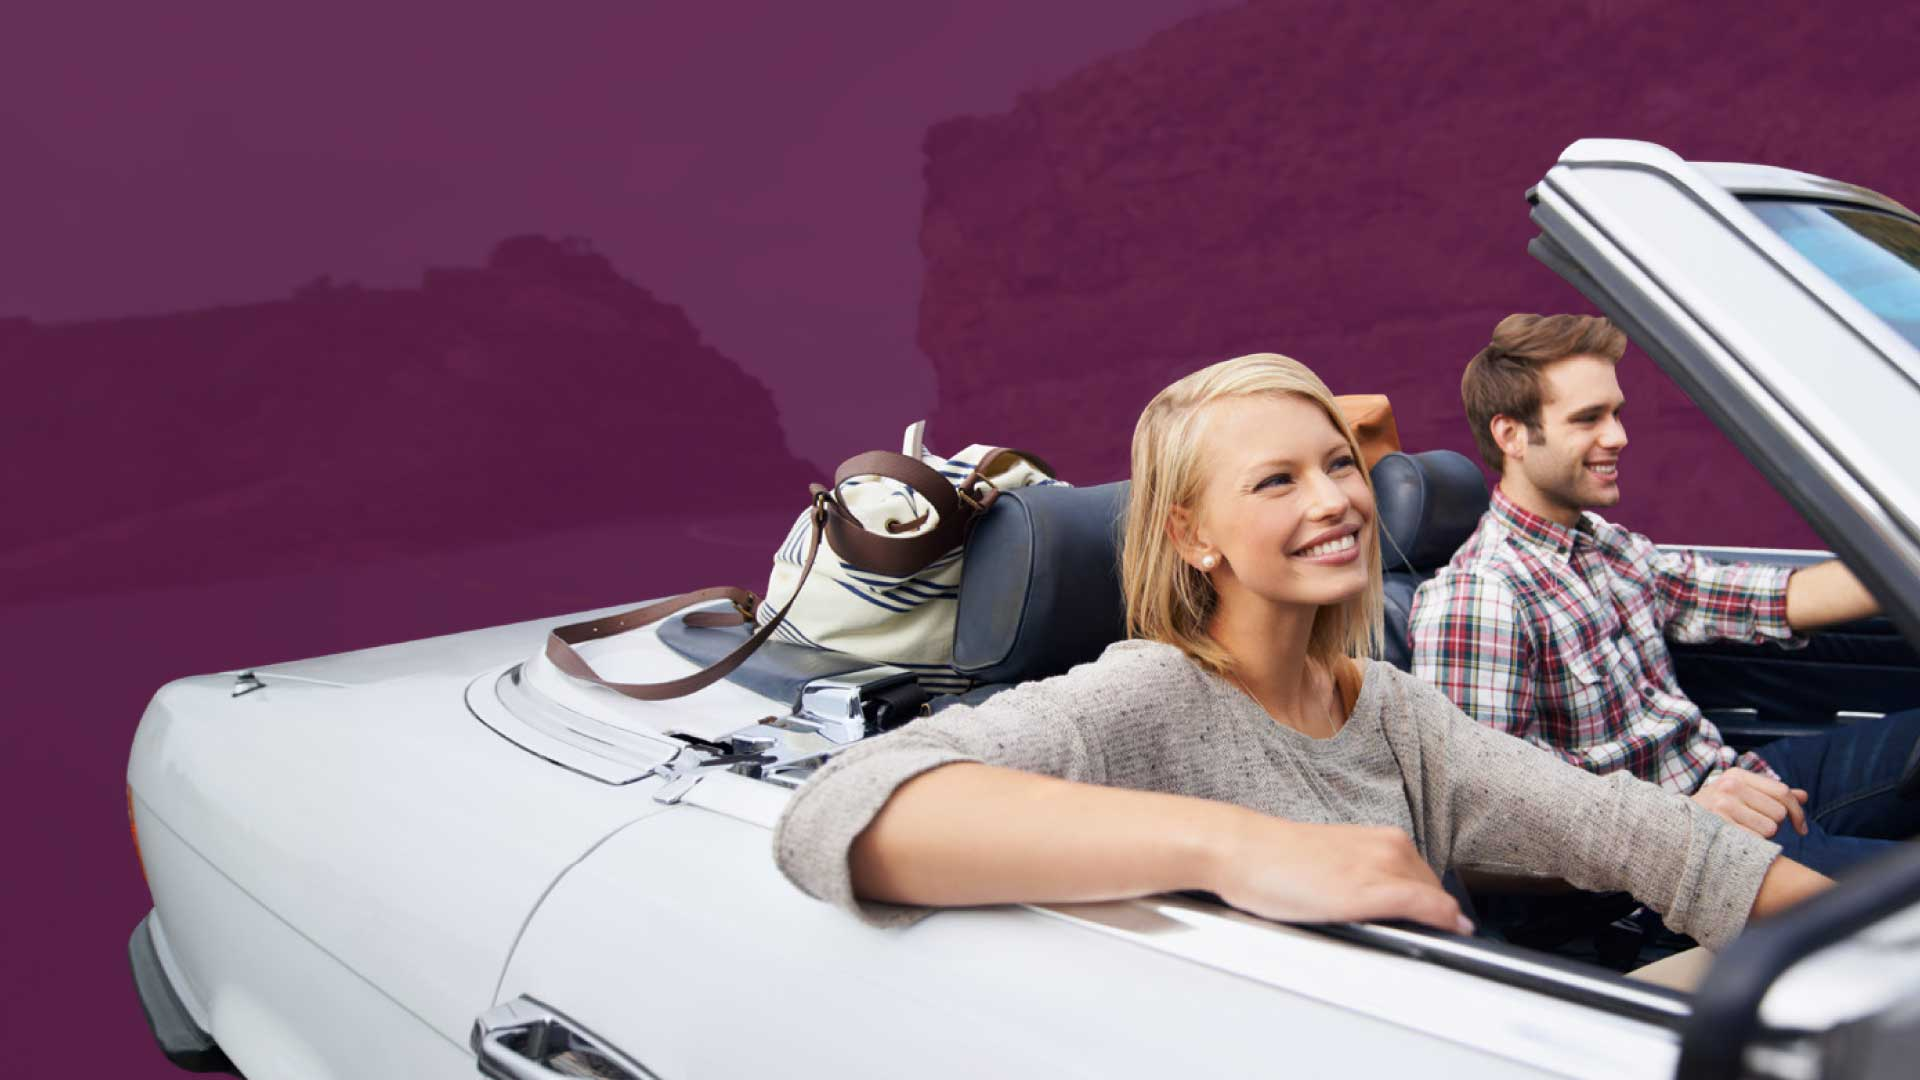 young_couple_riding_in_convertible_car_smiling